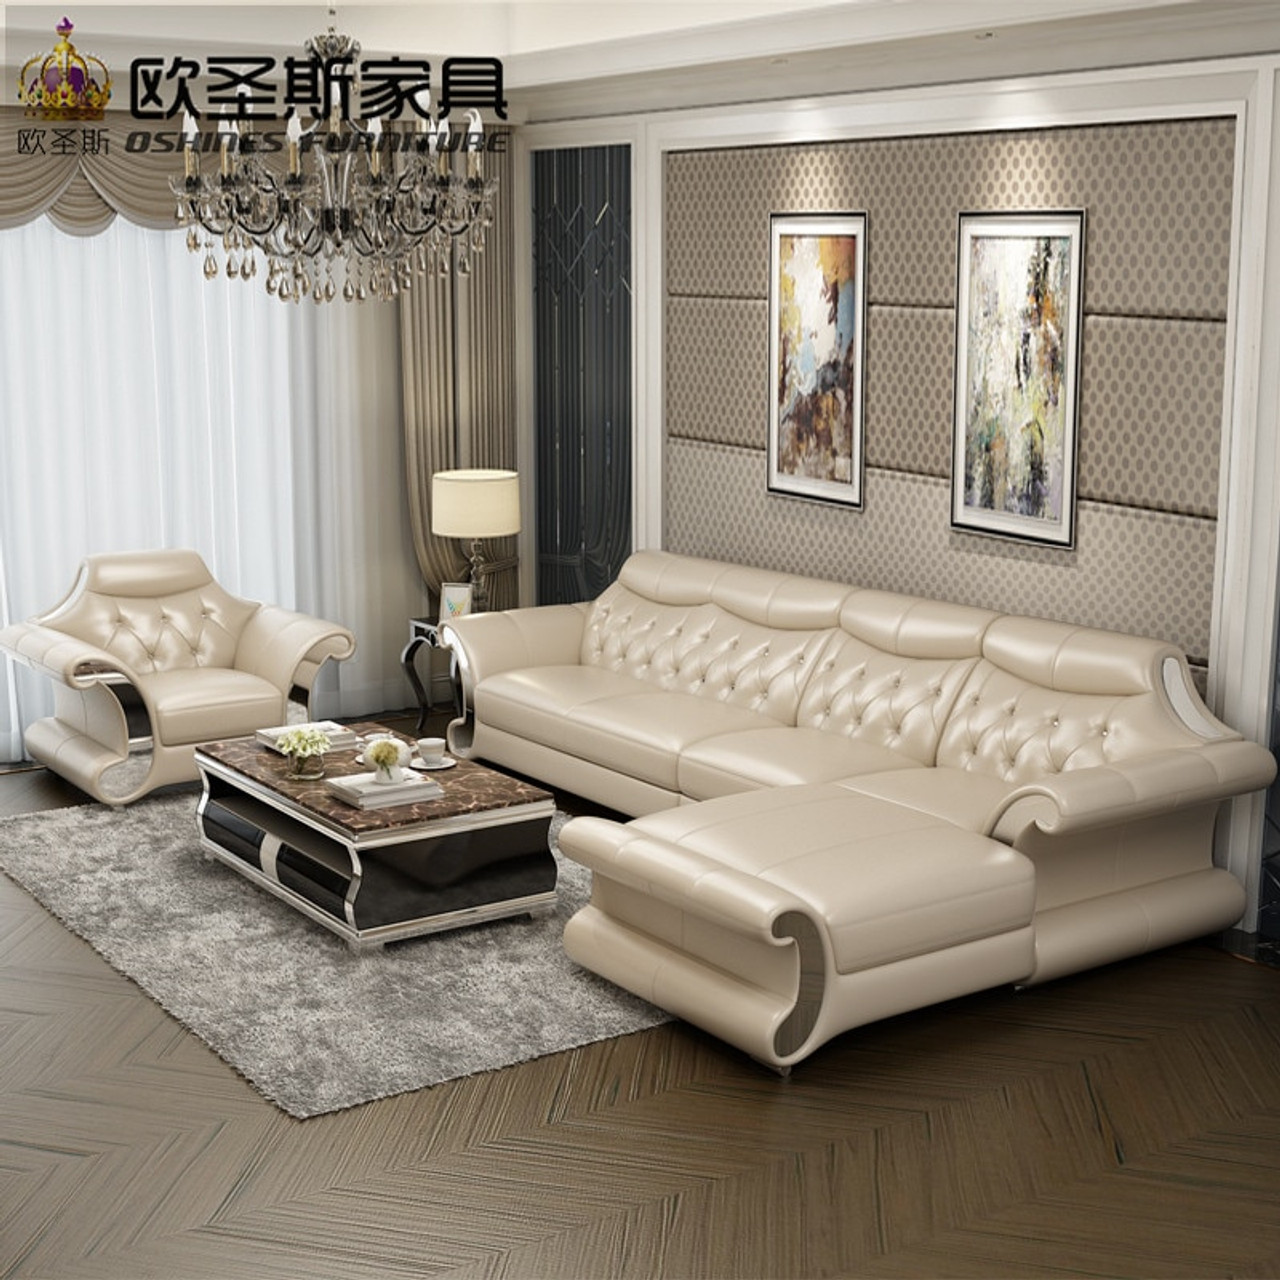 Stylish Sofa Set Designs: Beautiful Post Modern Bright Colored Sleeper Couch Living